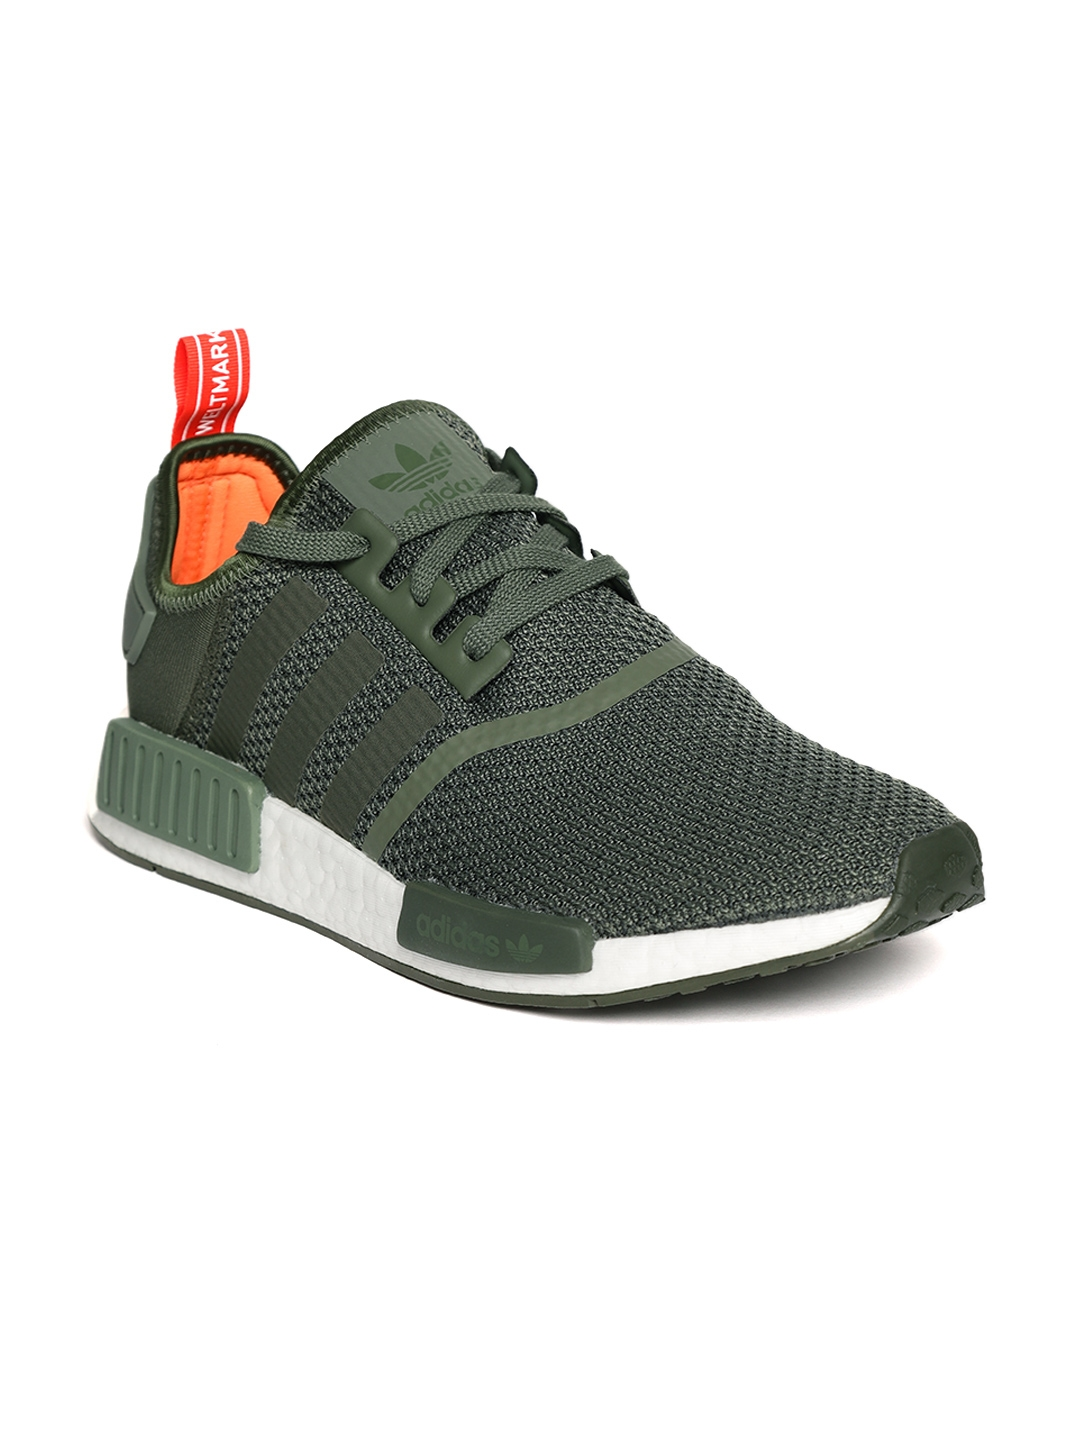 c1137f1519a9b Buy ADIDAS Originals Men Olive Green NMD R1 Casual Shoes - Casual ...